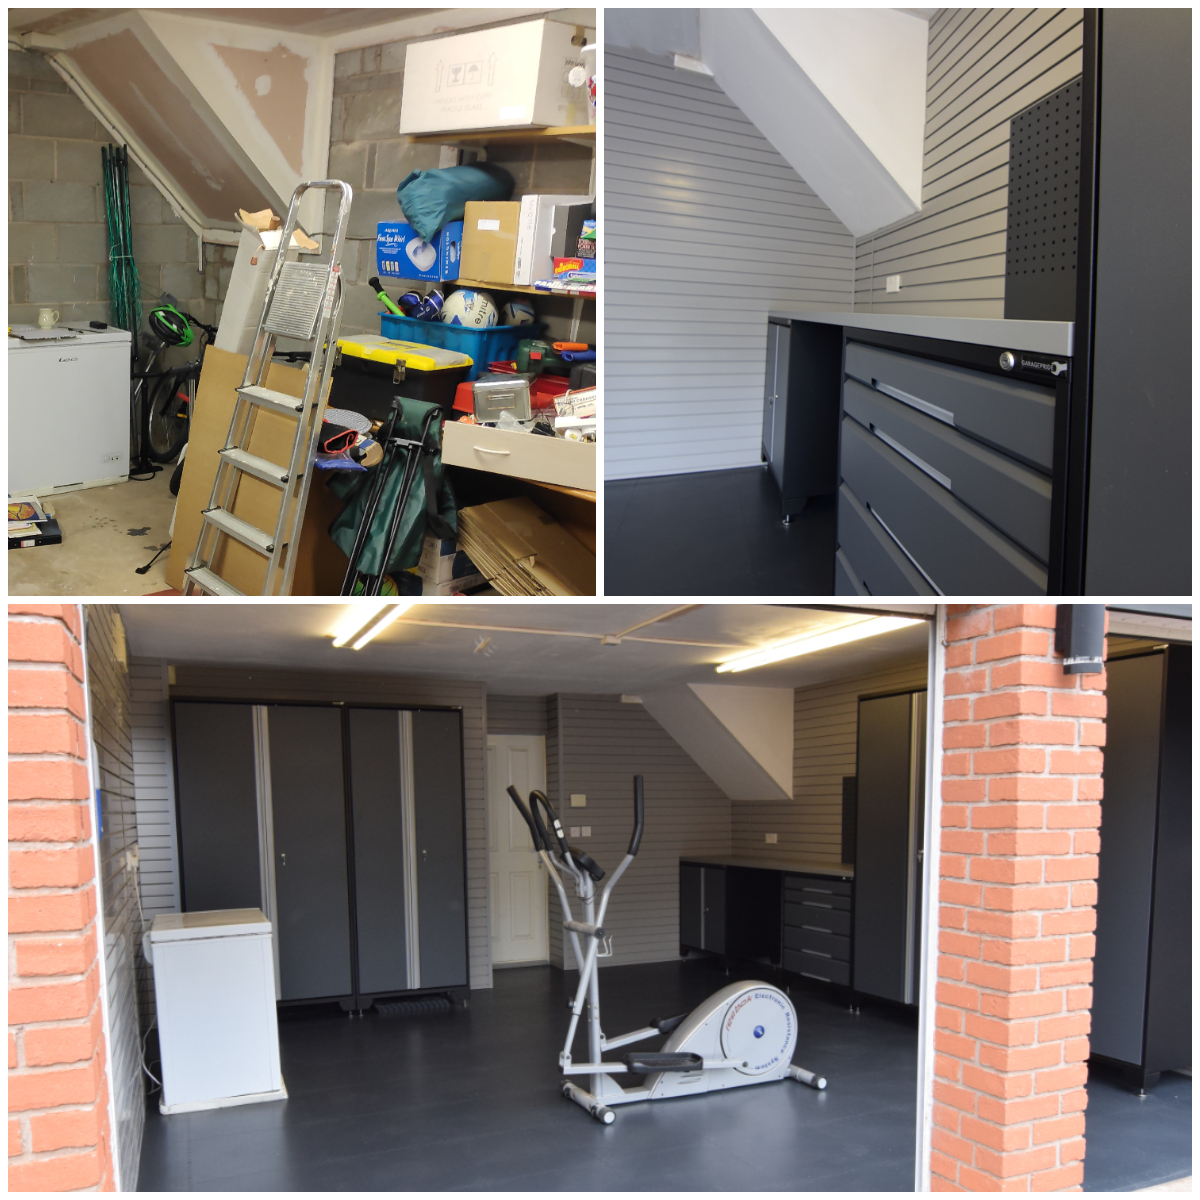 How many garages look like that top left? We transformed this customer's garage with full StorePanel cladding, EvoLine cabinets and 7mm thick PVC floor tiles. It's now a useful, attractive and welcoming environment with everything in its place.